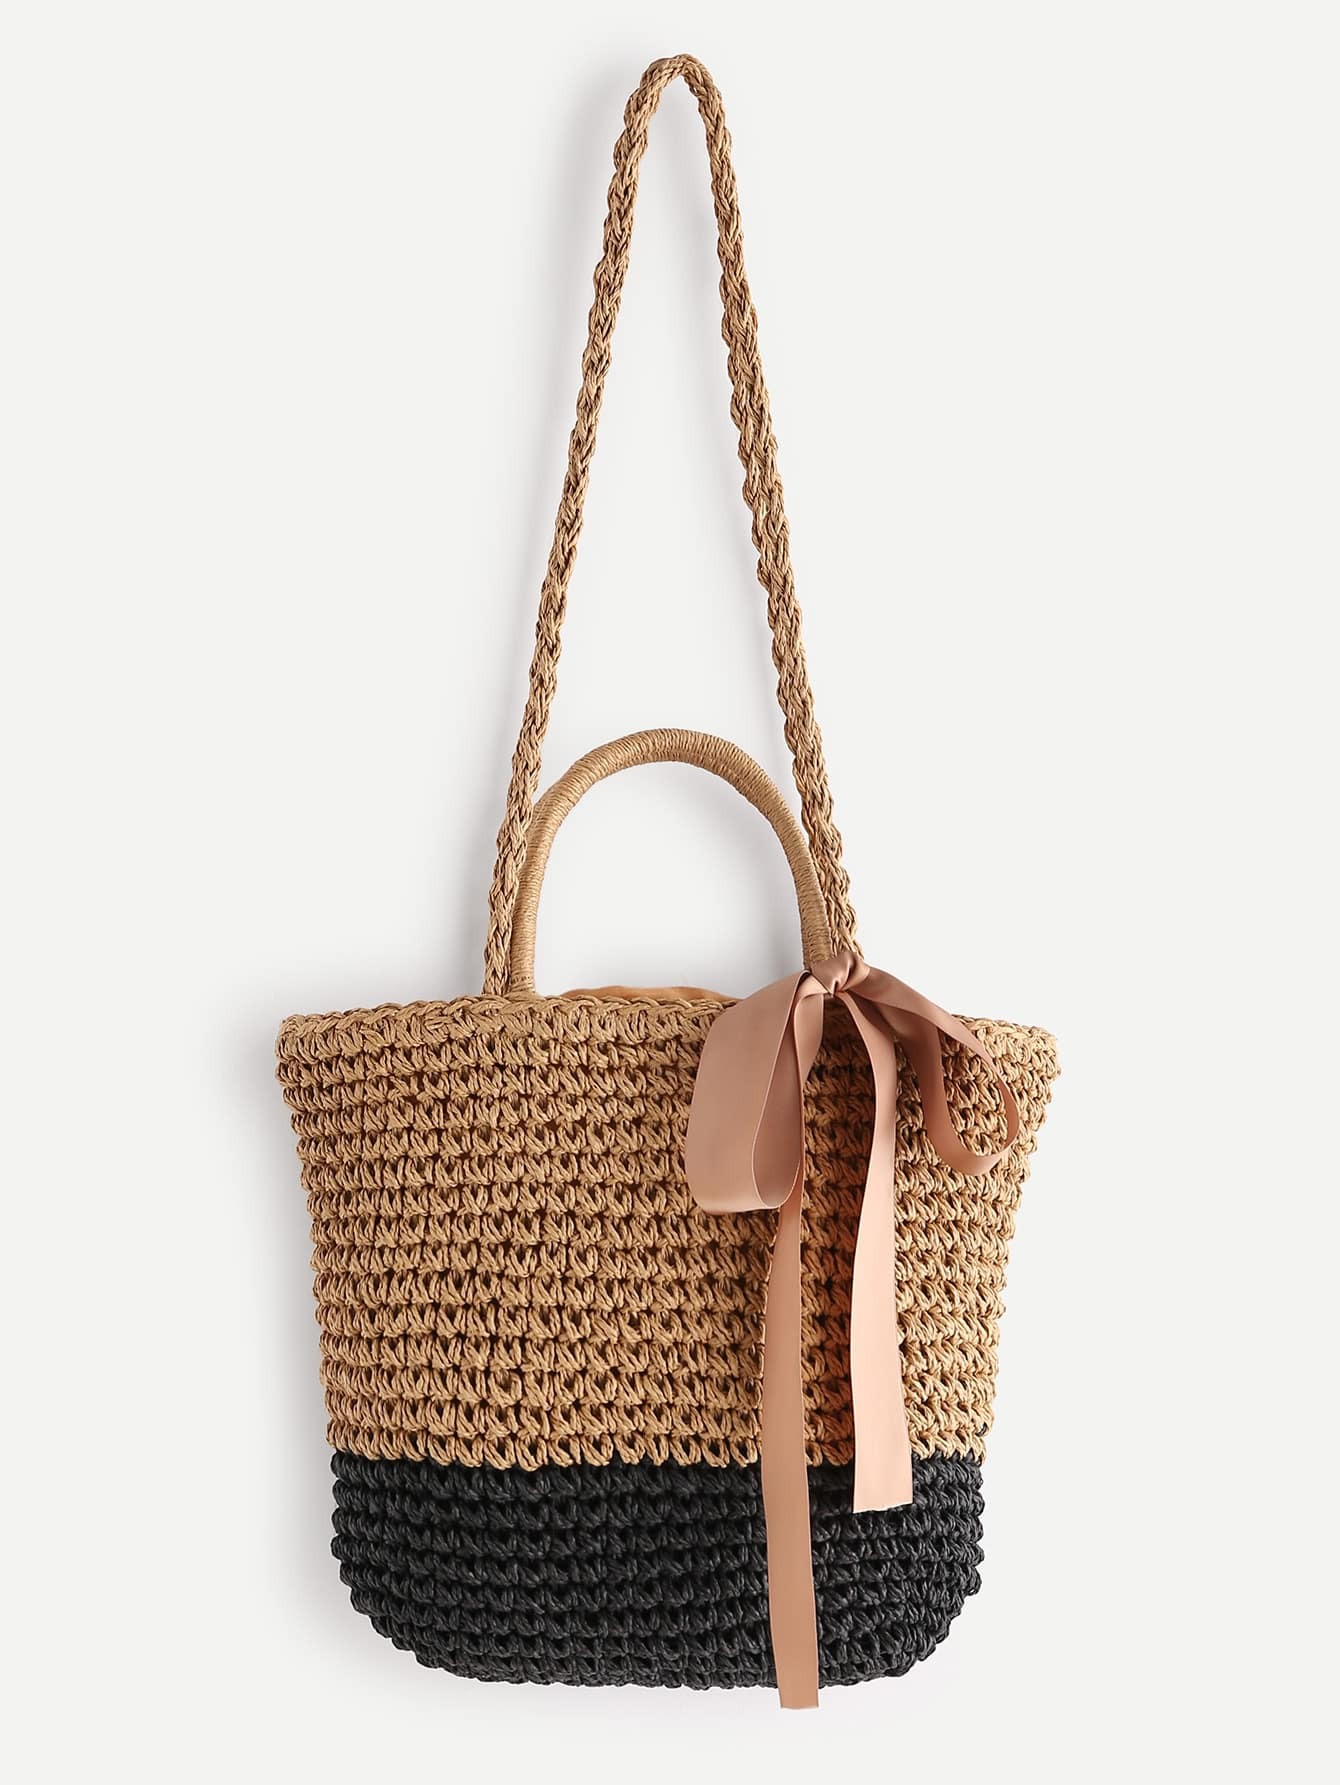 http://us.shein.com/Tassel-Detail-Color-Block-Straw-Shoulder-Bag-With-Handle-p-352369-cat-1764.html?aff_id=4021